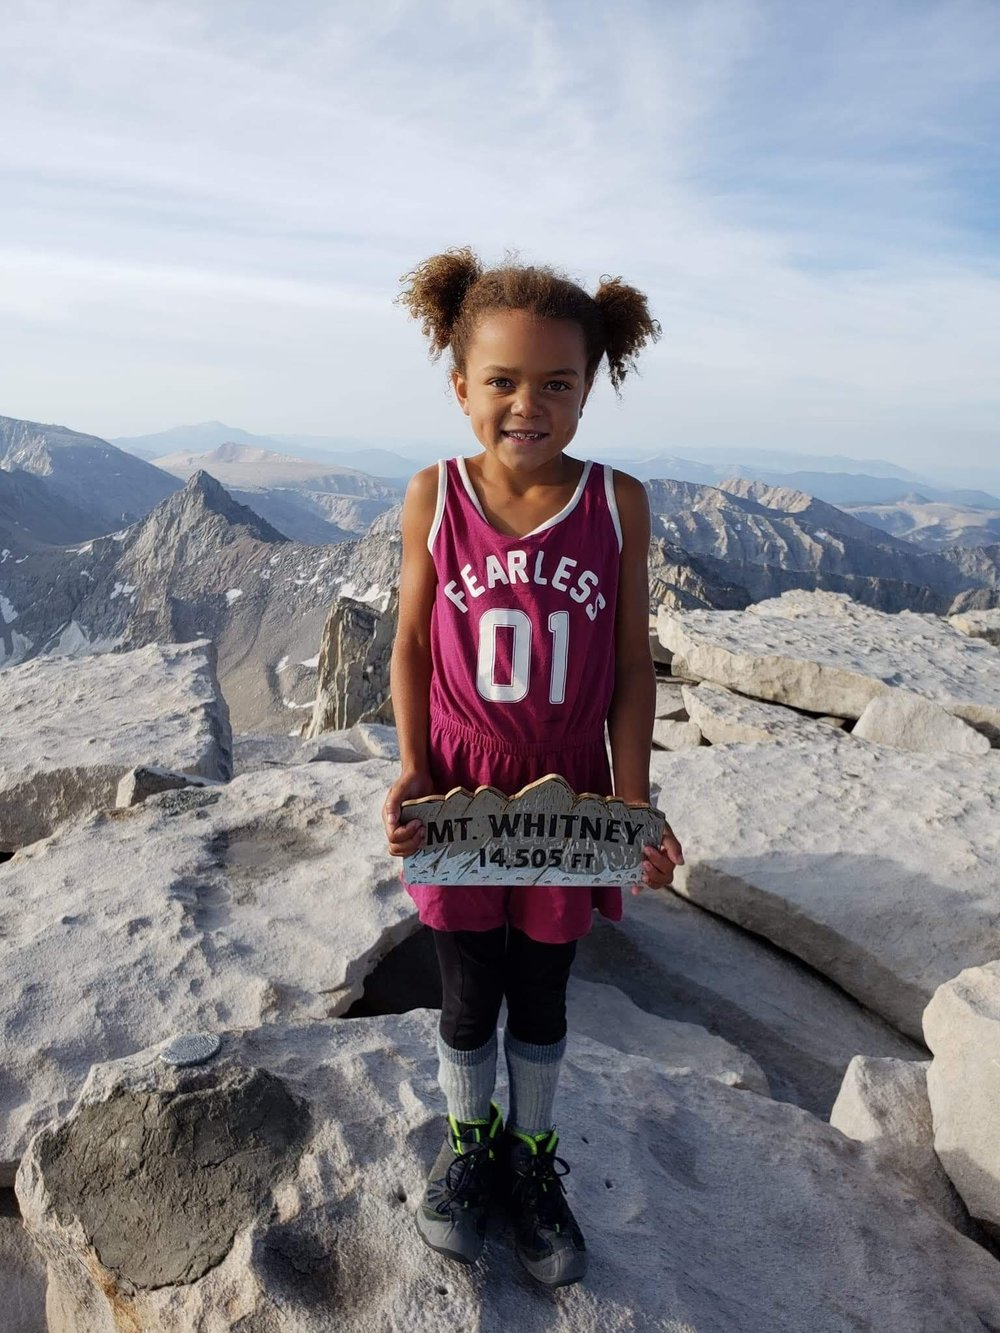 My 6 year old on top of Mt. Whitney - My daughter is 6 years old and she just made it to the summit of Mt. Whitney in the USA a few days ago (July 2018). Please note that the actual name of this mountain is Tumanguya, named by the Pi Ute indigenous people  before that region of the Sierra Nevadas was colonized.My daughter's name is Eva Luna.  I believe she may be the youngest girl to have done this on record in the last ten years. Research shows that a six year old boy did it in October 2016. So far, the number of children to have done it at the age of 6 and under are 3 kids (at least on record). Eva Luna wanted to be one of the youngest girls on record and it seems like she is probably as well as the youngest African American person on record. You can go here to learn more about why this is significant within a sport in which we rarely see more African Americans doing 14k+ mountains-- or mountaineering and extreme hiking in general. The Mountaineers also addresses this here.Tumanguya is the tallest mountain in the contiguous USA at 14,505 feet. 22 miles, but the high elevation and thin air can make it grueling and feel like twice as long for many who have attempted the ascent. She persevered through mild symptoms of altitude sickness. She woke up at midnight to start the ascent with headlamp and with her daddy and nine year old brother. It took them nine hours, half in the dark. One of the photos below is of Eva Luna on my back while we hiked Yosemite when she was a baby. Learning about hiking all the time from our many adventures from Utah to Yosemite, and other places with great long trails. She thought it was normal that I had a 25lb baby on my back while hiking up mountains and other places for miles. My favorite was her on my back for ten hours while we hiked Bryce Canon in Utah.In one of the photos below, I was pregnant with Kiki (her younger sister) while Eva Luna was on my back (Yosemite).Eva Luna has seen me hiking while pregnant and has seen me hiking while having Kiki (younger sister) on my back. Same with me being pregnant with Miro (who was born in 2016). We have 4 kids now and they have all spent hours on my back, while our family hiked and camped. Also, her daddy is a mountaineer. It is part of our family culture. He was an amazing mentor and lead as he took Sun and Eva Luna to Tumanguya (renamed Mt. Whitney) and handled business.I can't emphasize enough, how much here older brother Sun, delivered as